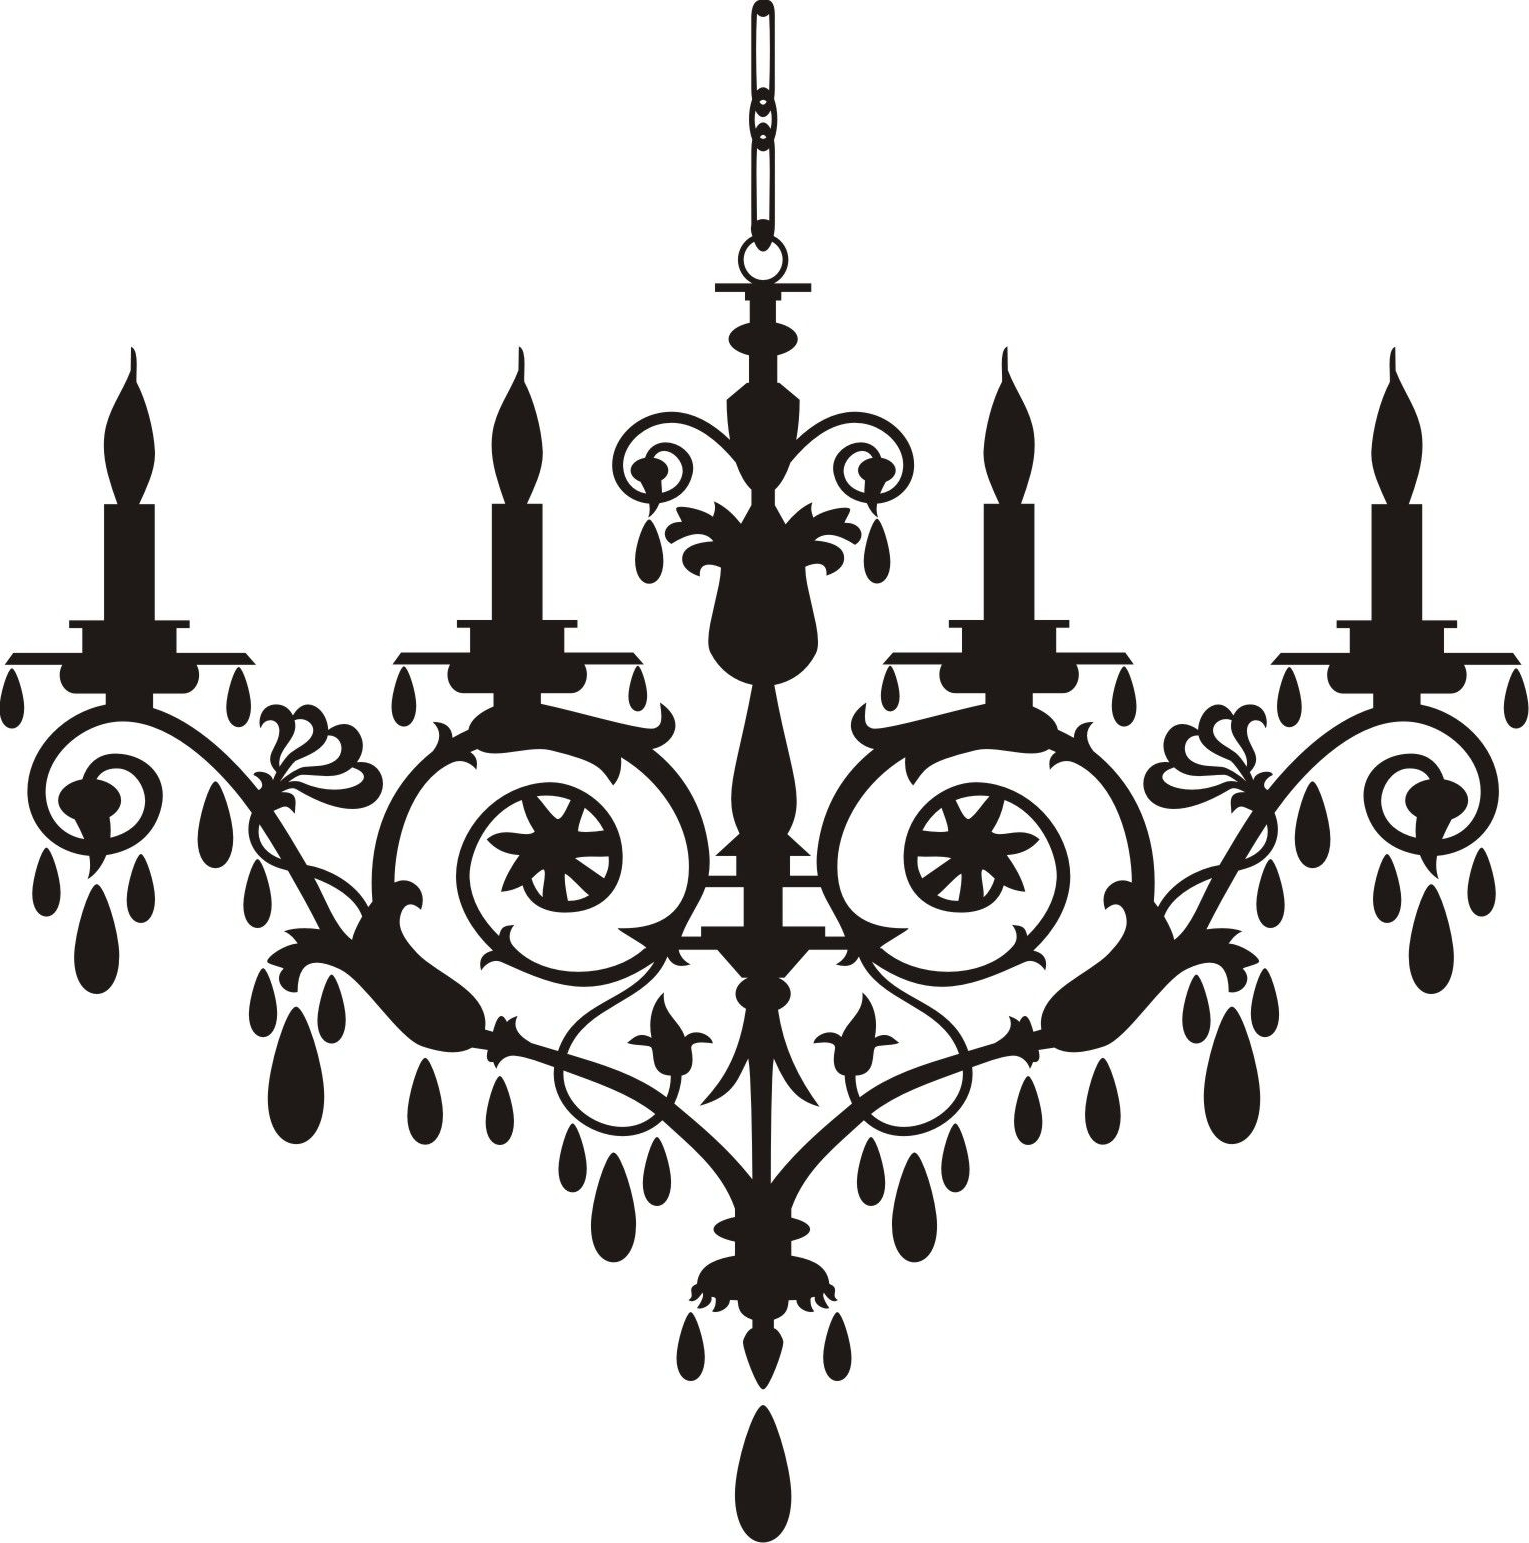 Clip On Chandeliers Throughout Favorite Chandelier Clip Art Http://www (View 10 of 15)